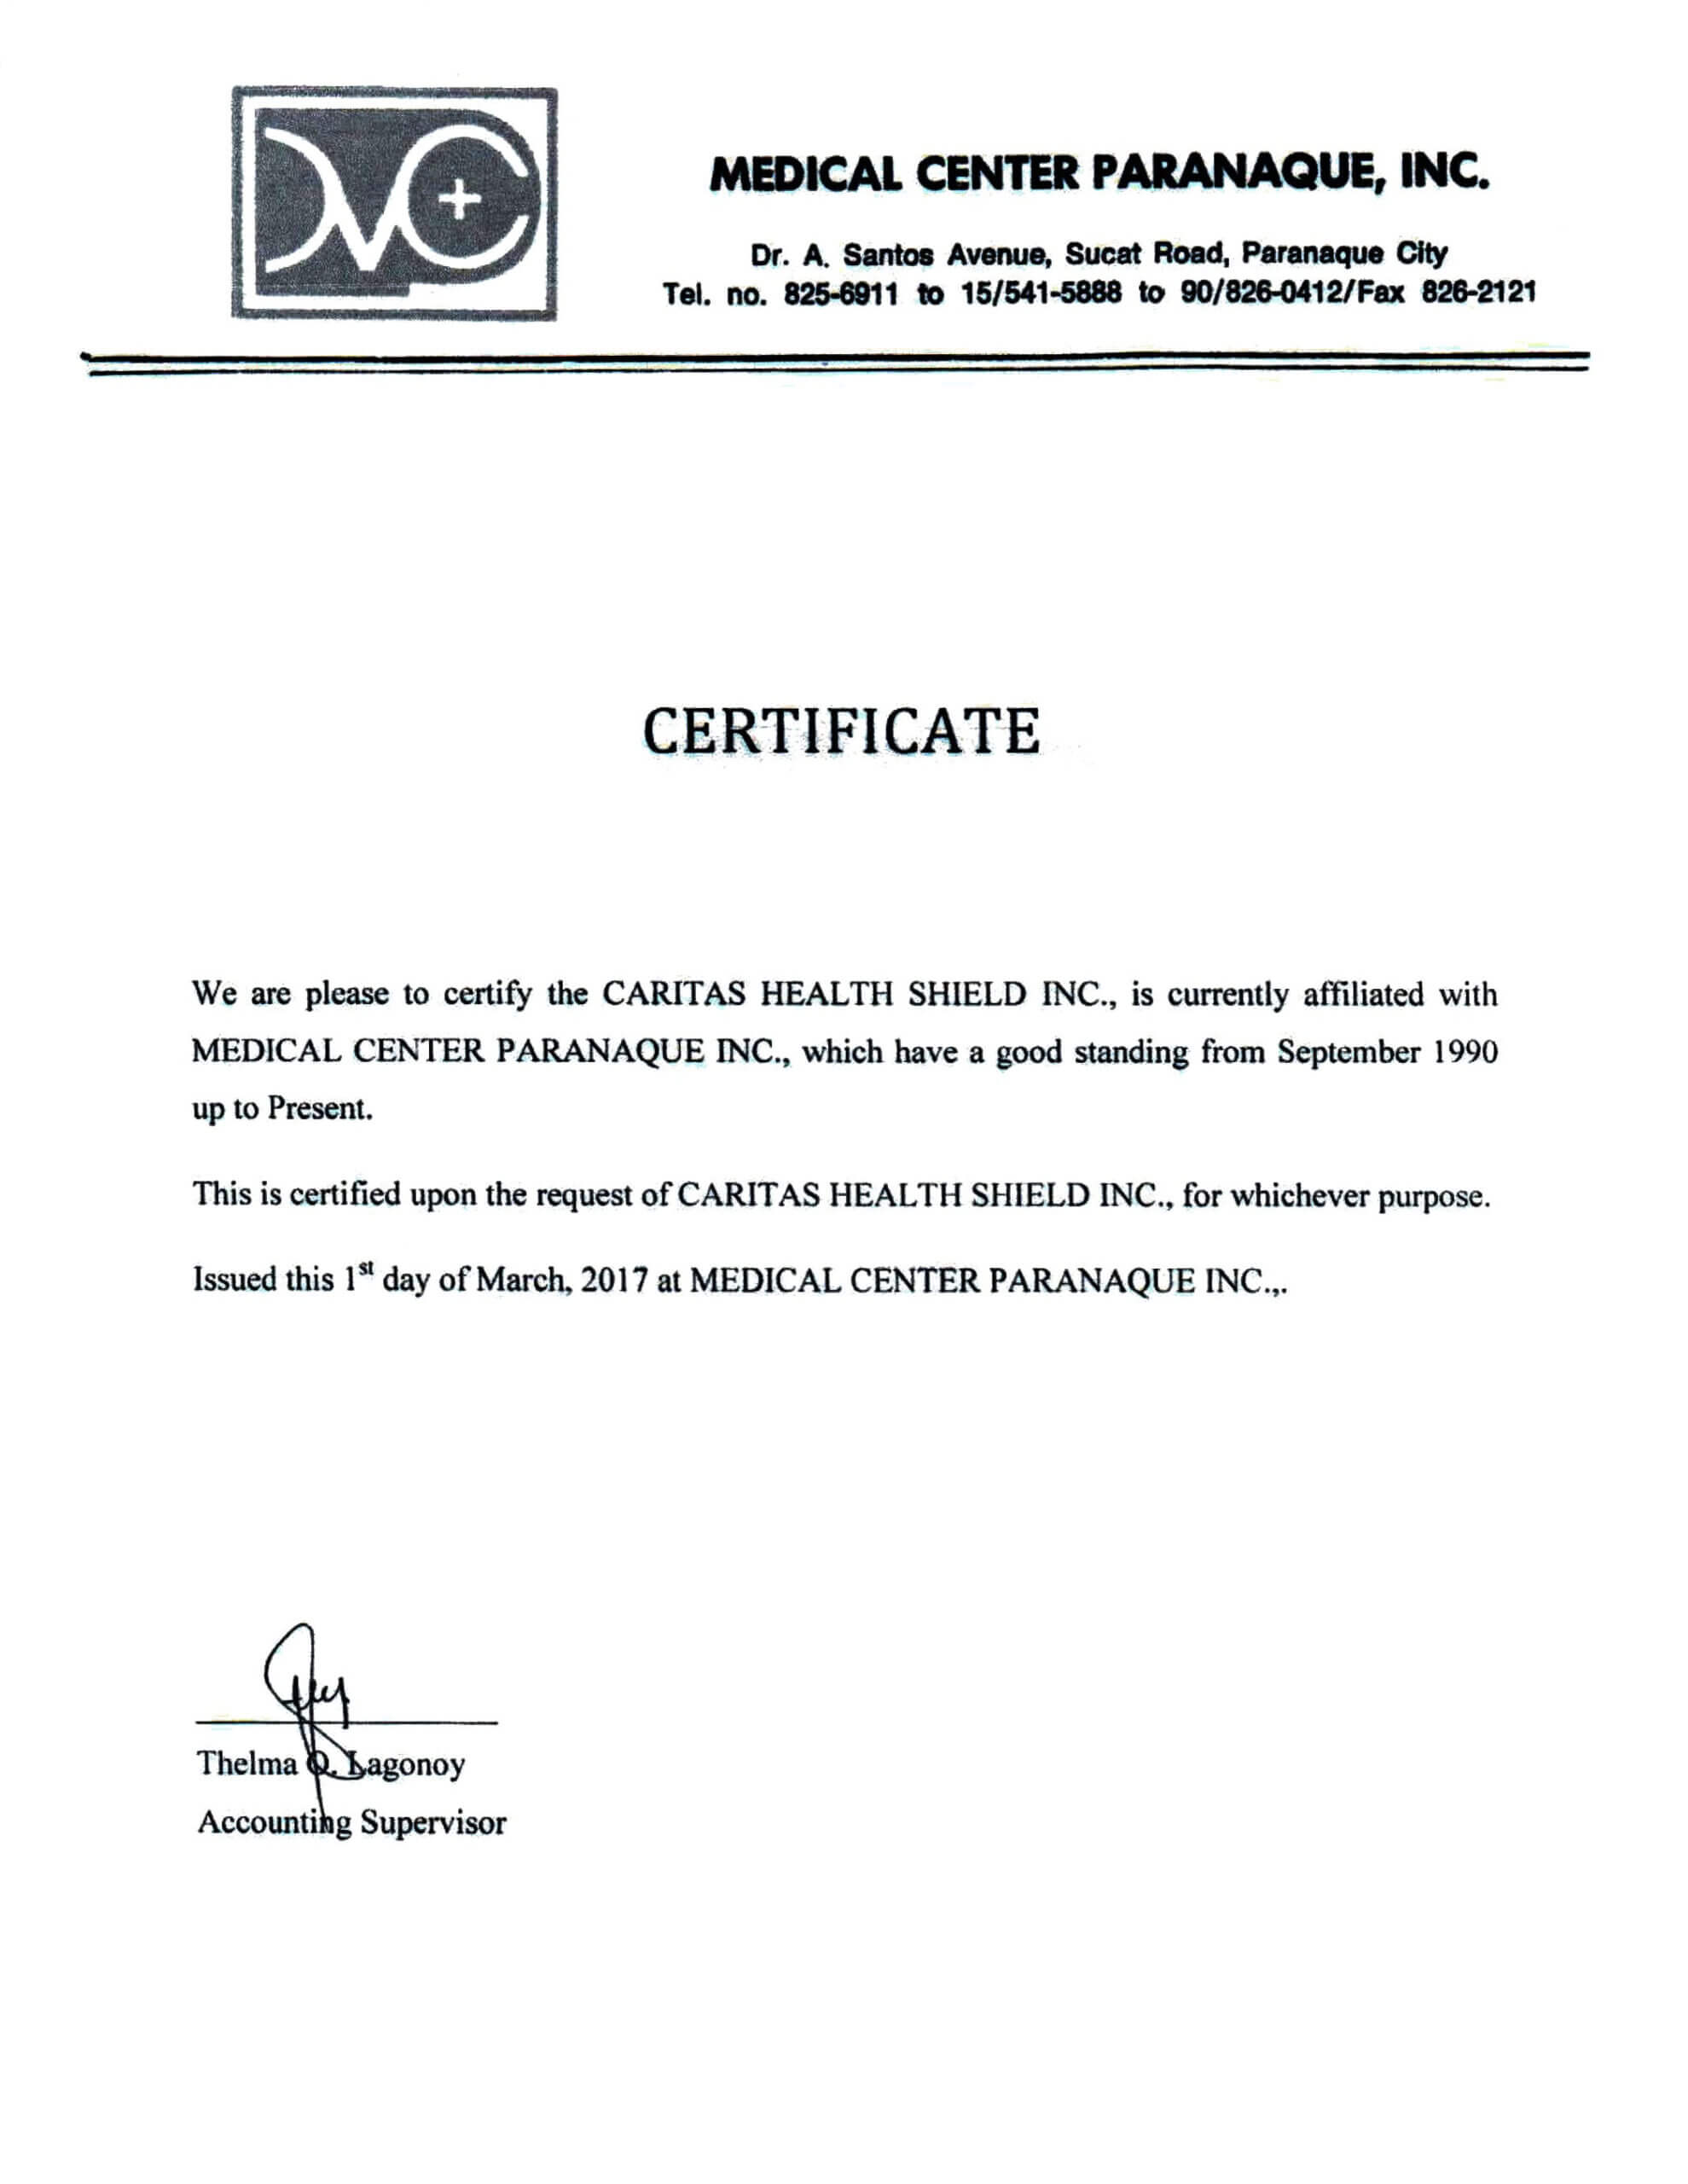 Medical Certificate For Viral Fever - Calep.midnightpig.co Pertaining To Australian Doctors Certificate Template